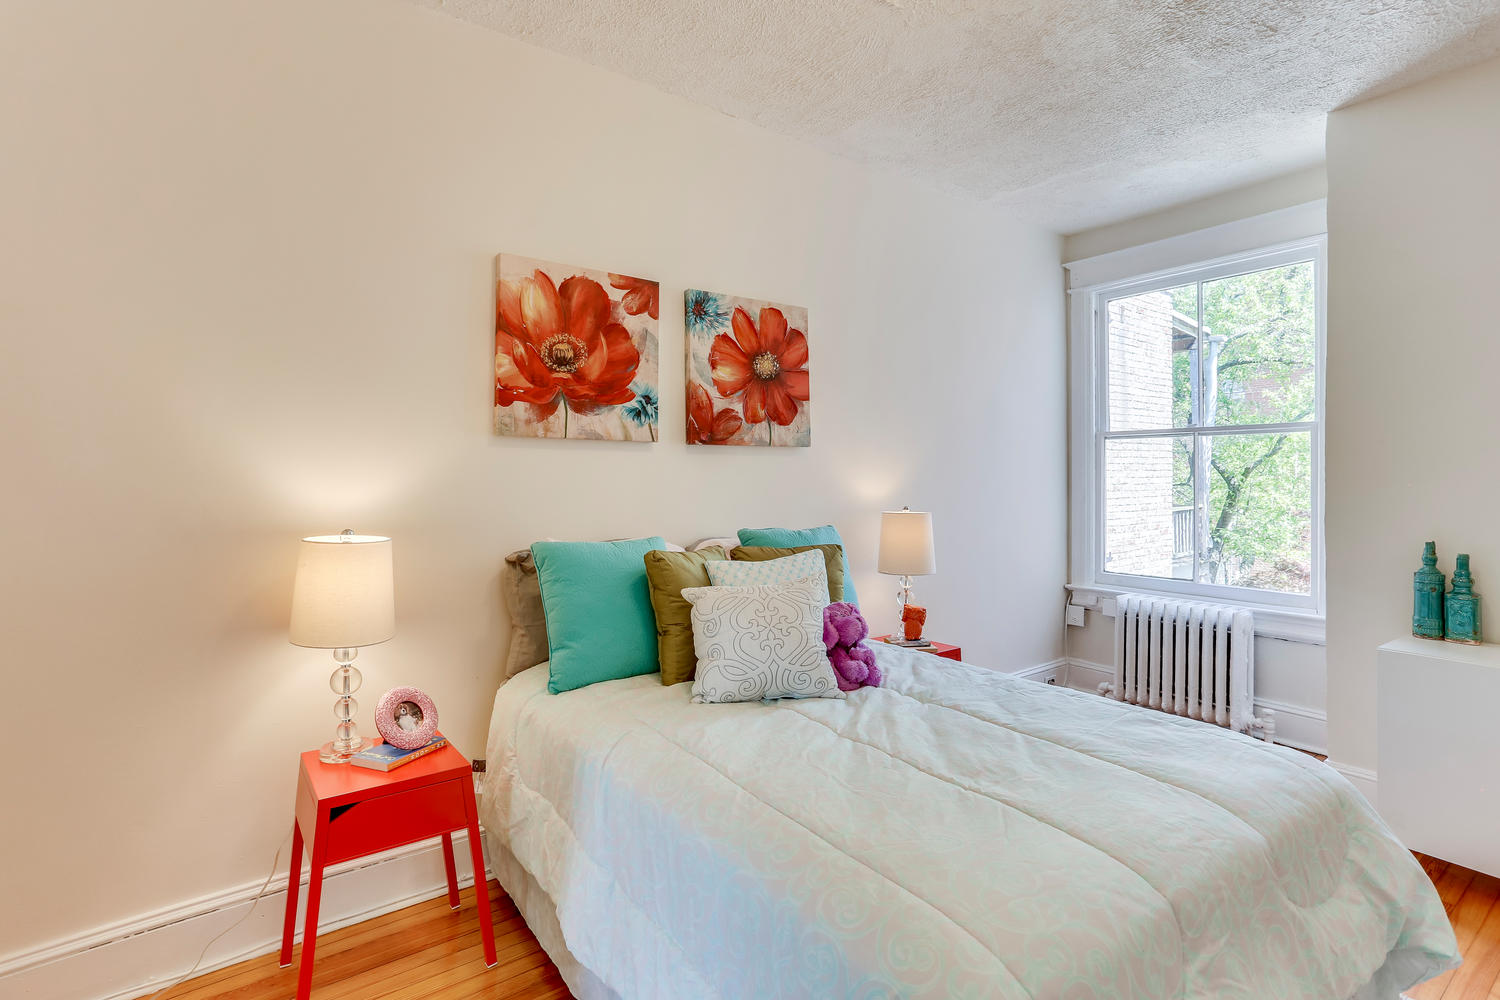 3143 19th St NW Washington DC-large-036-33-Bedroom-1500x1000-72dpi.jpg